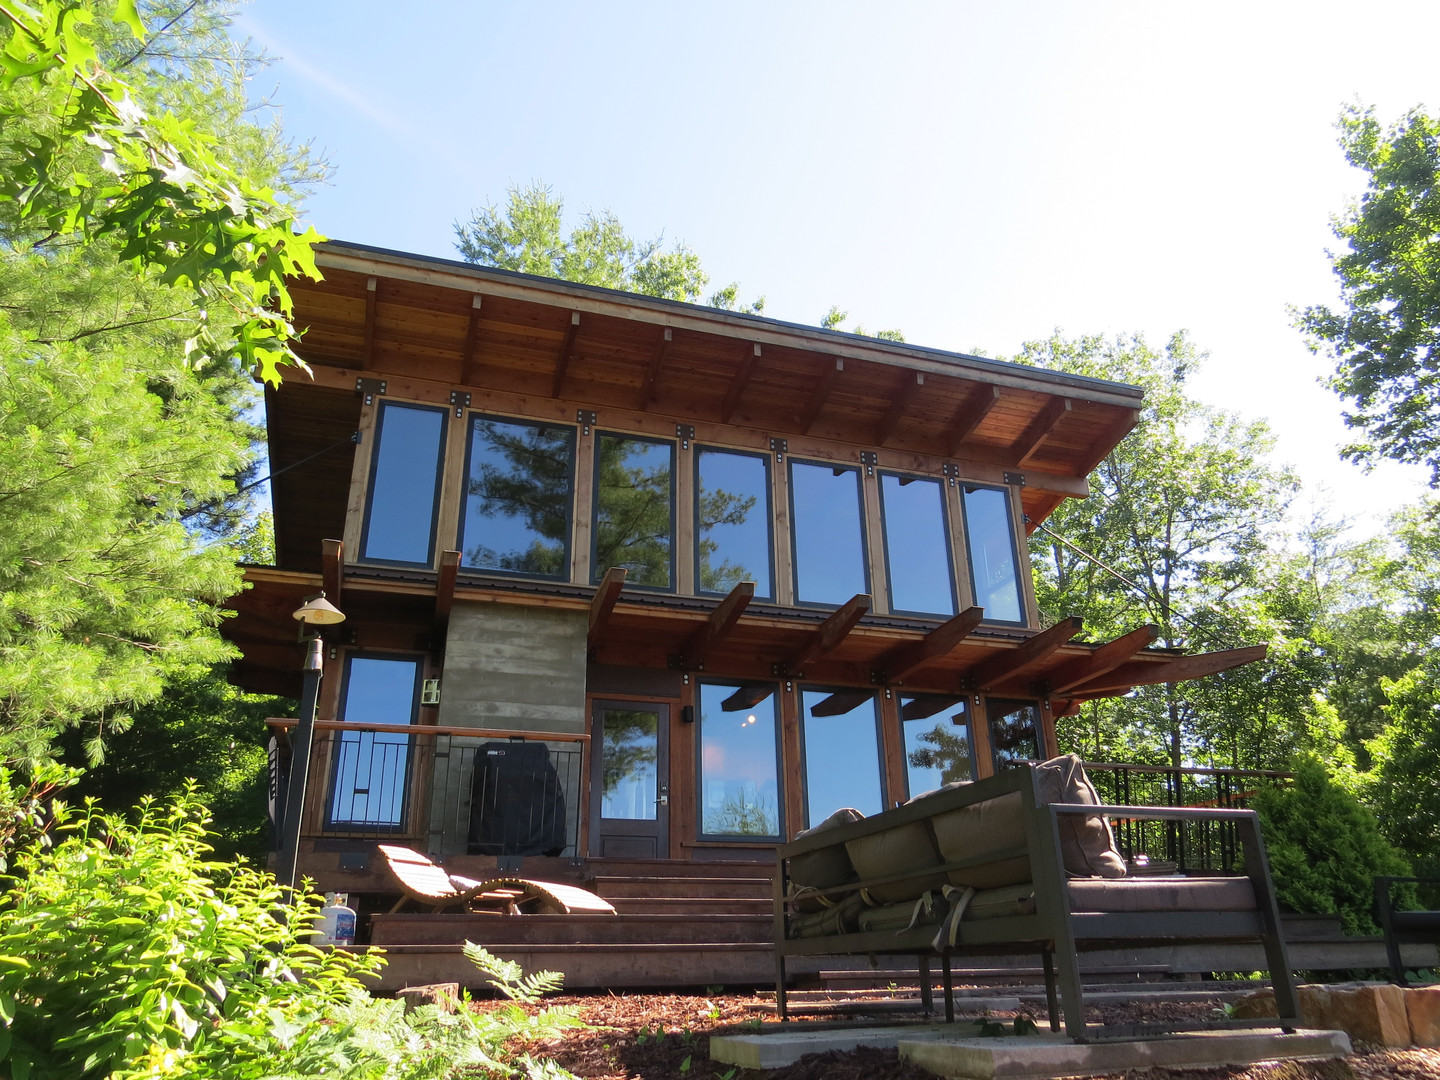 Tucked away and completely private, the Stecoah House modern cabin is a top choice in the area for enjoying the Great Smoky Mountains.